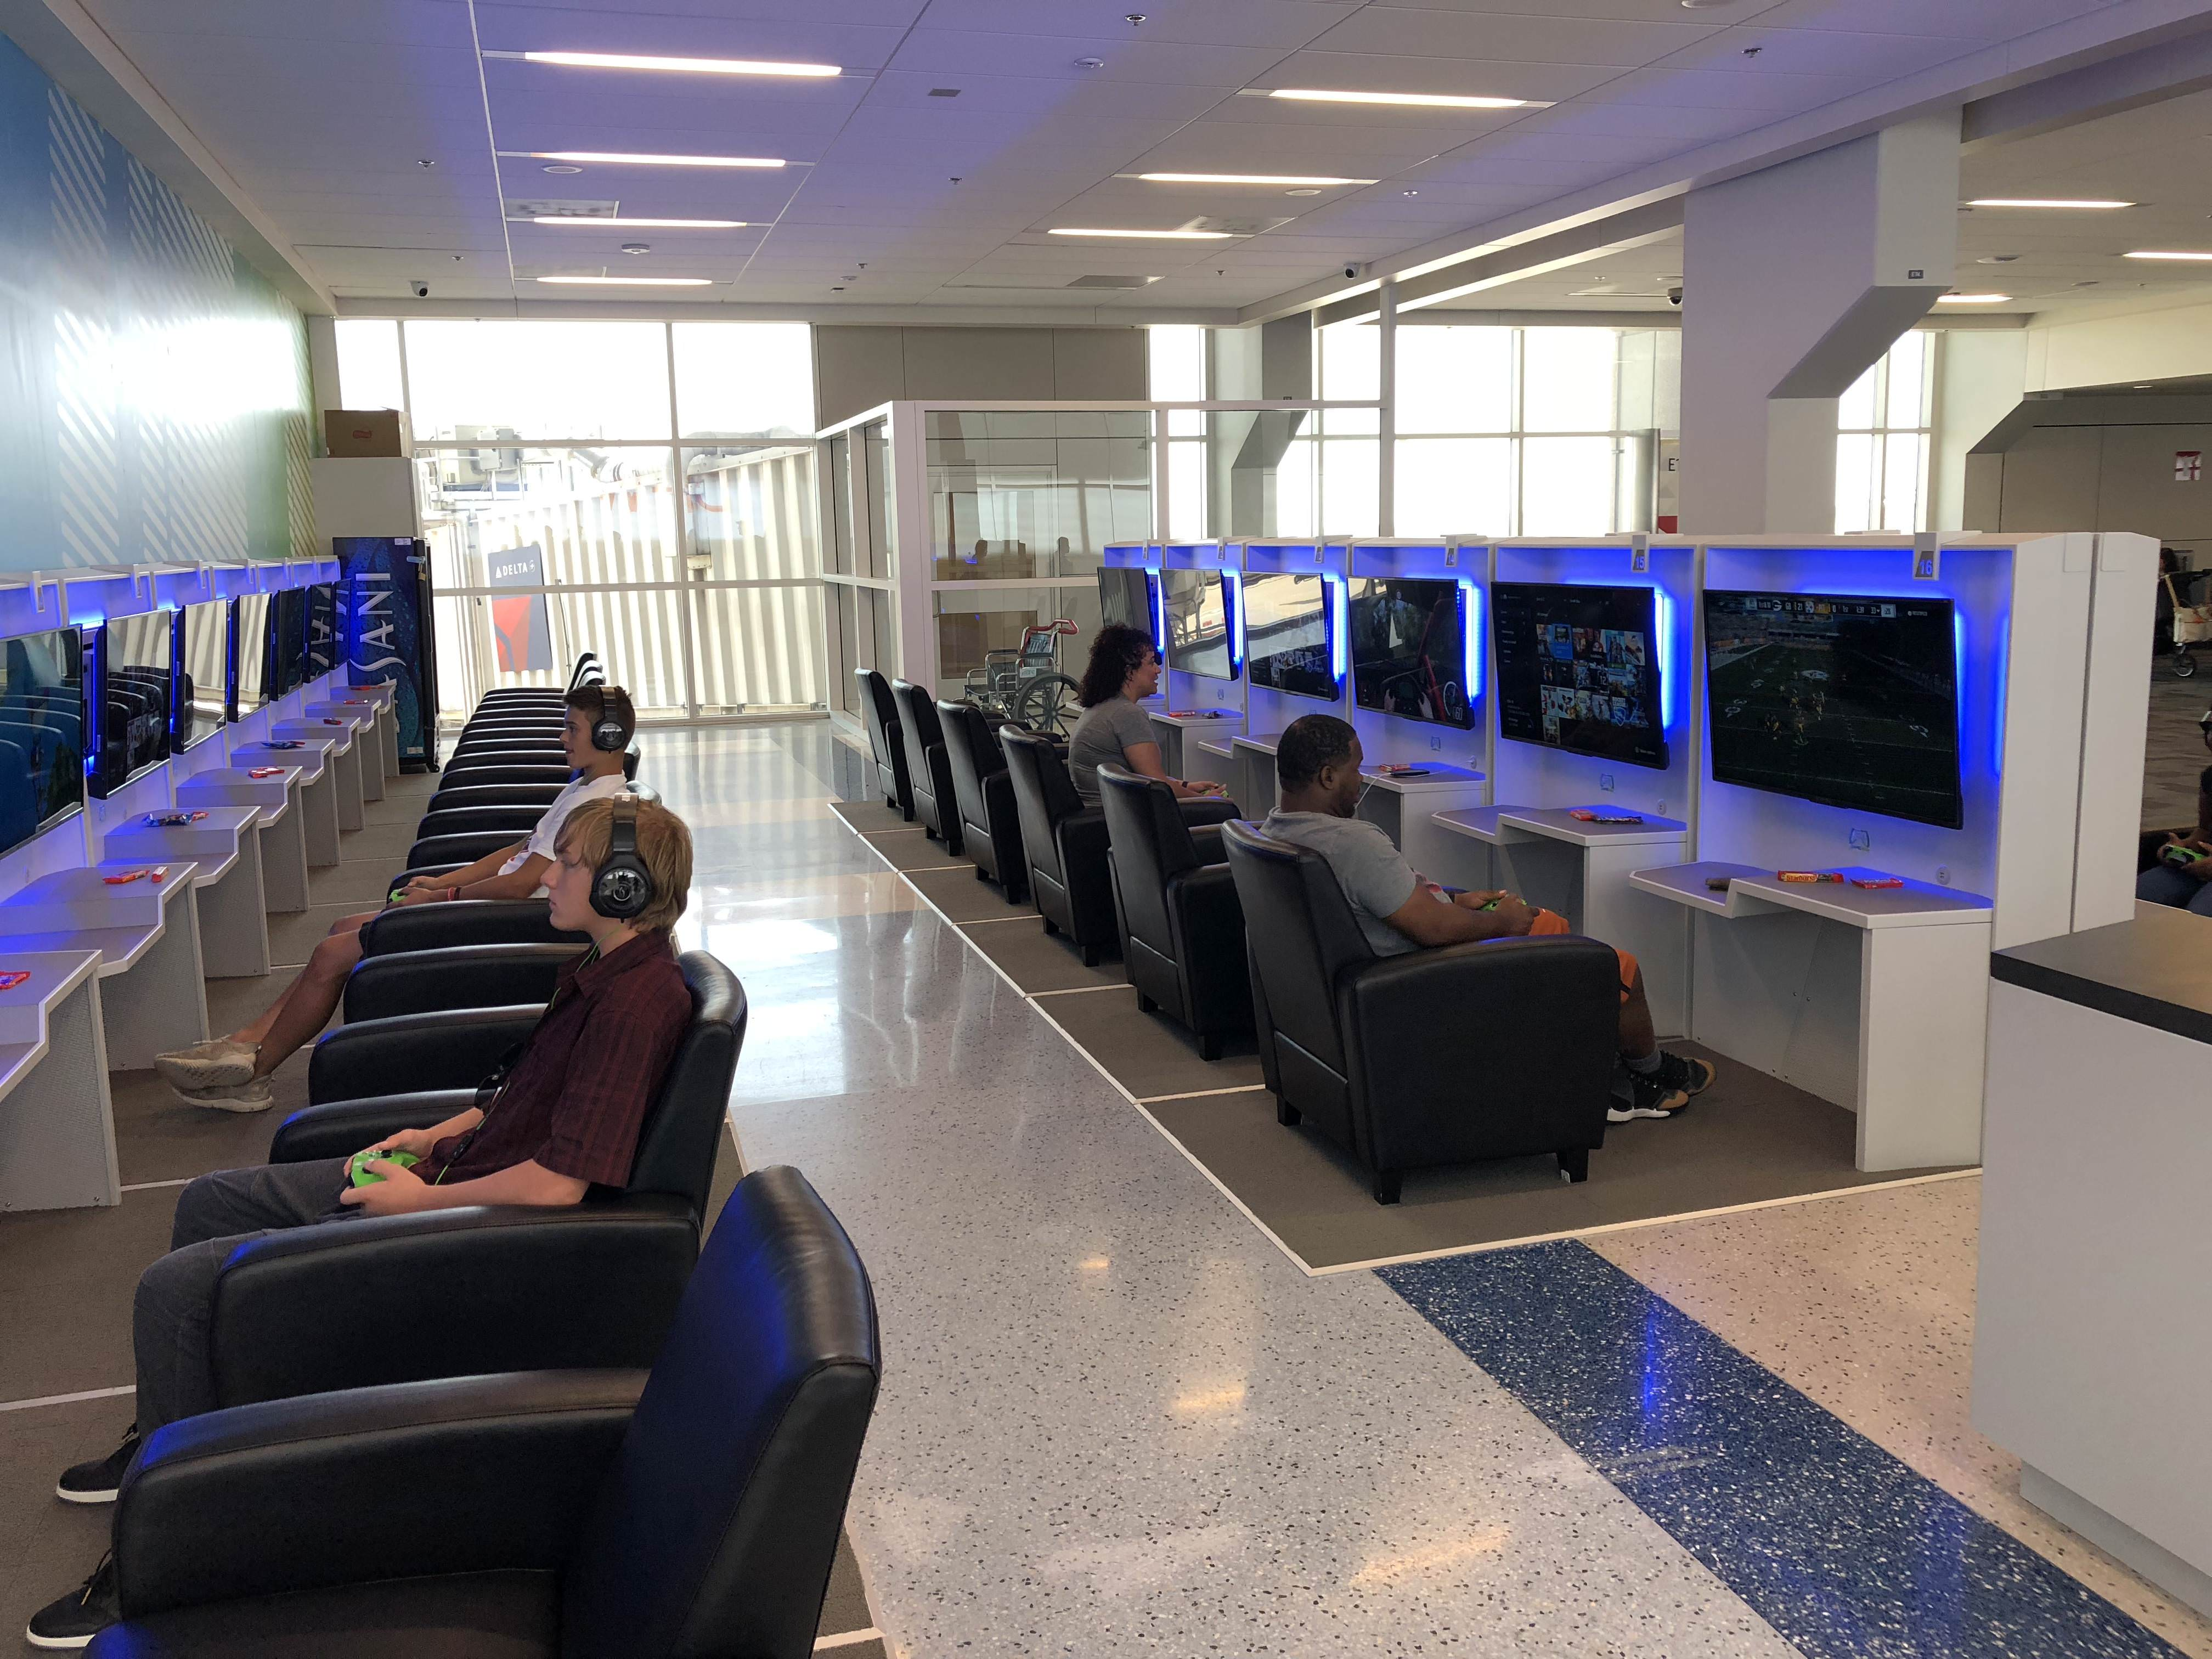 Airport Adds Gaming Lounge So You Can Play While Waiting For Your Plane